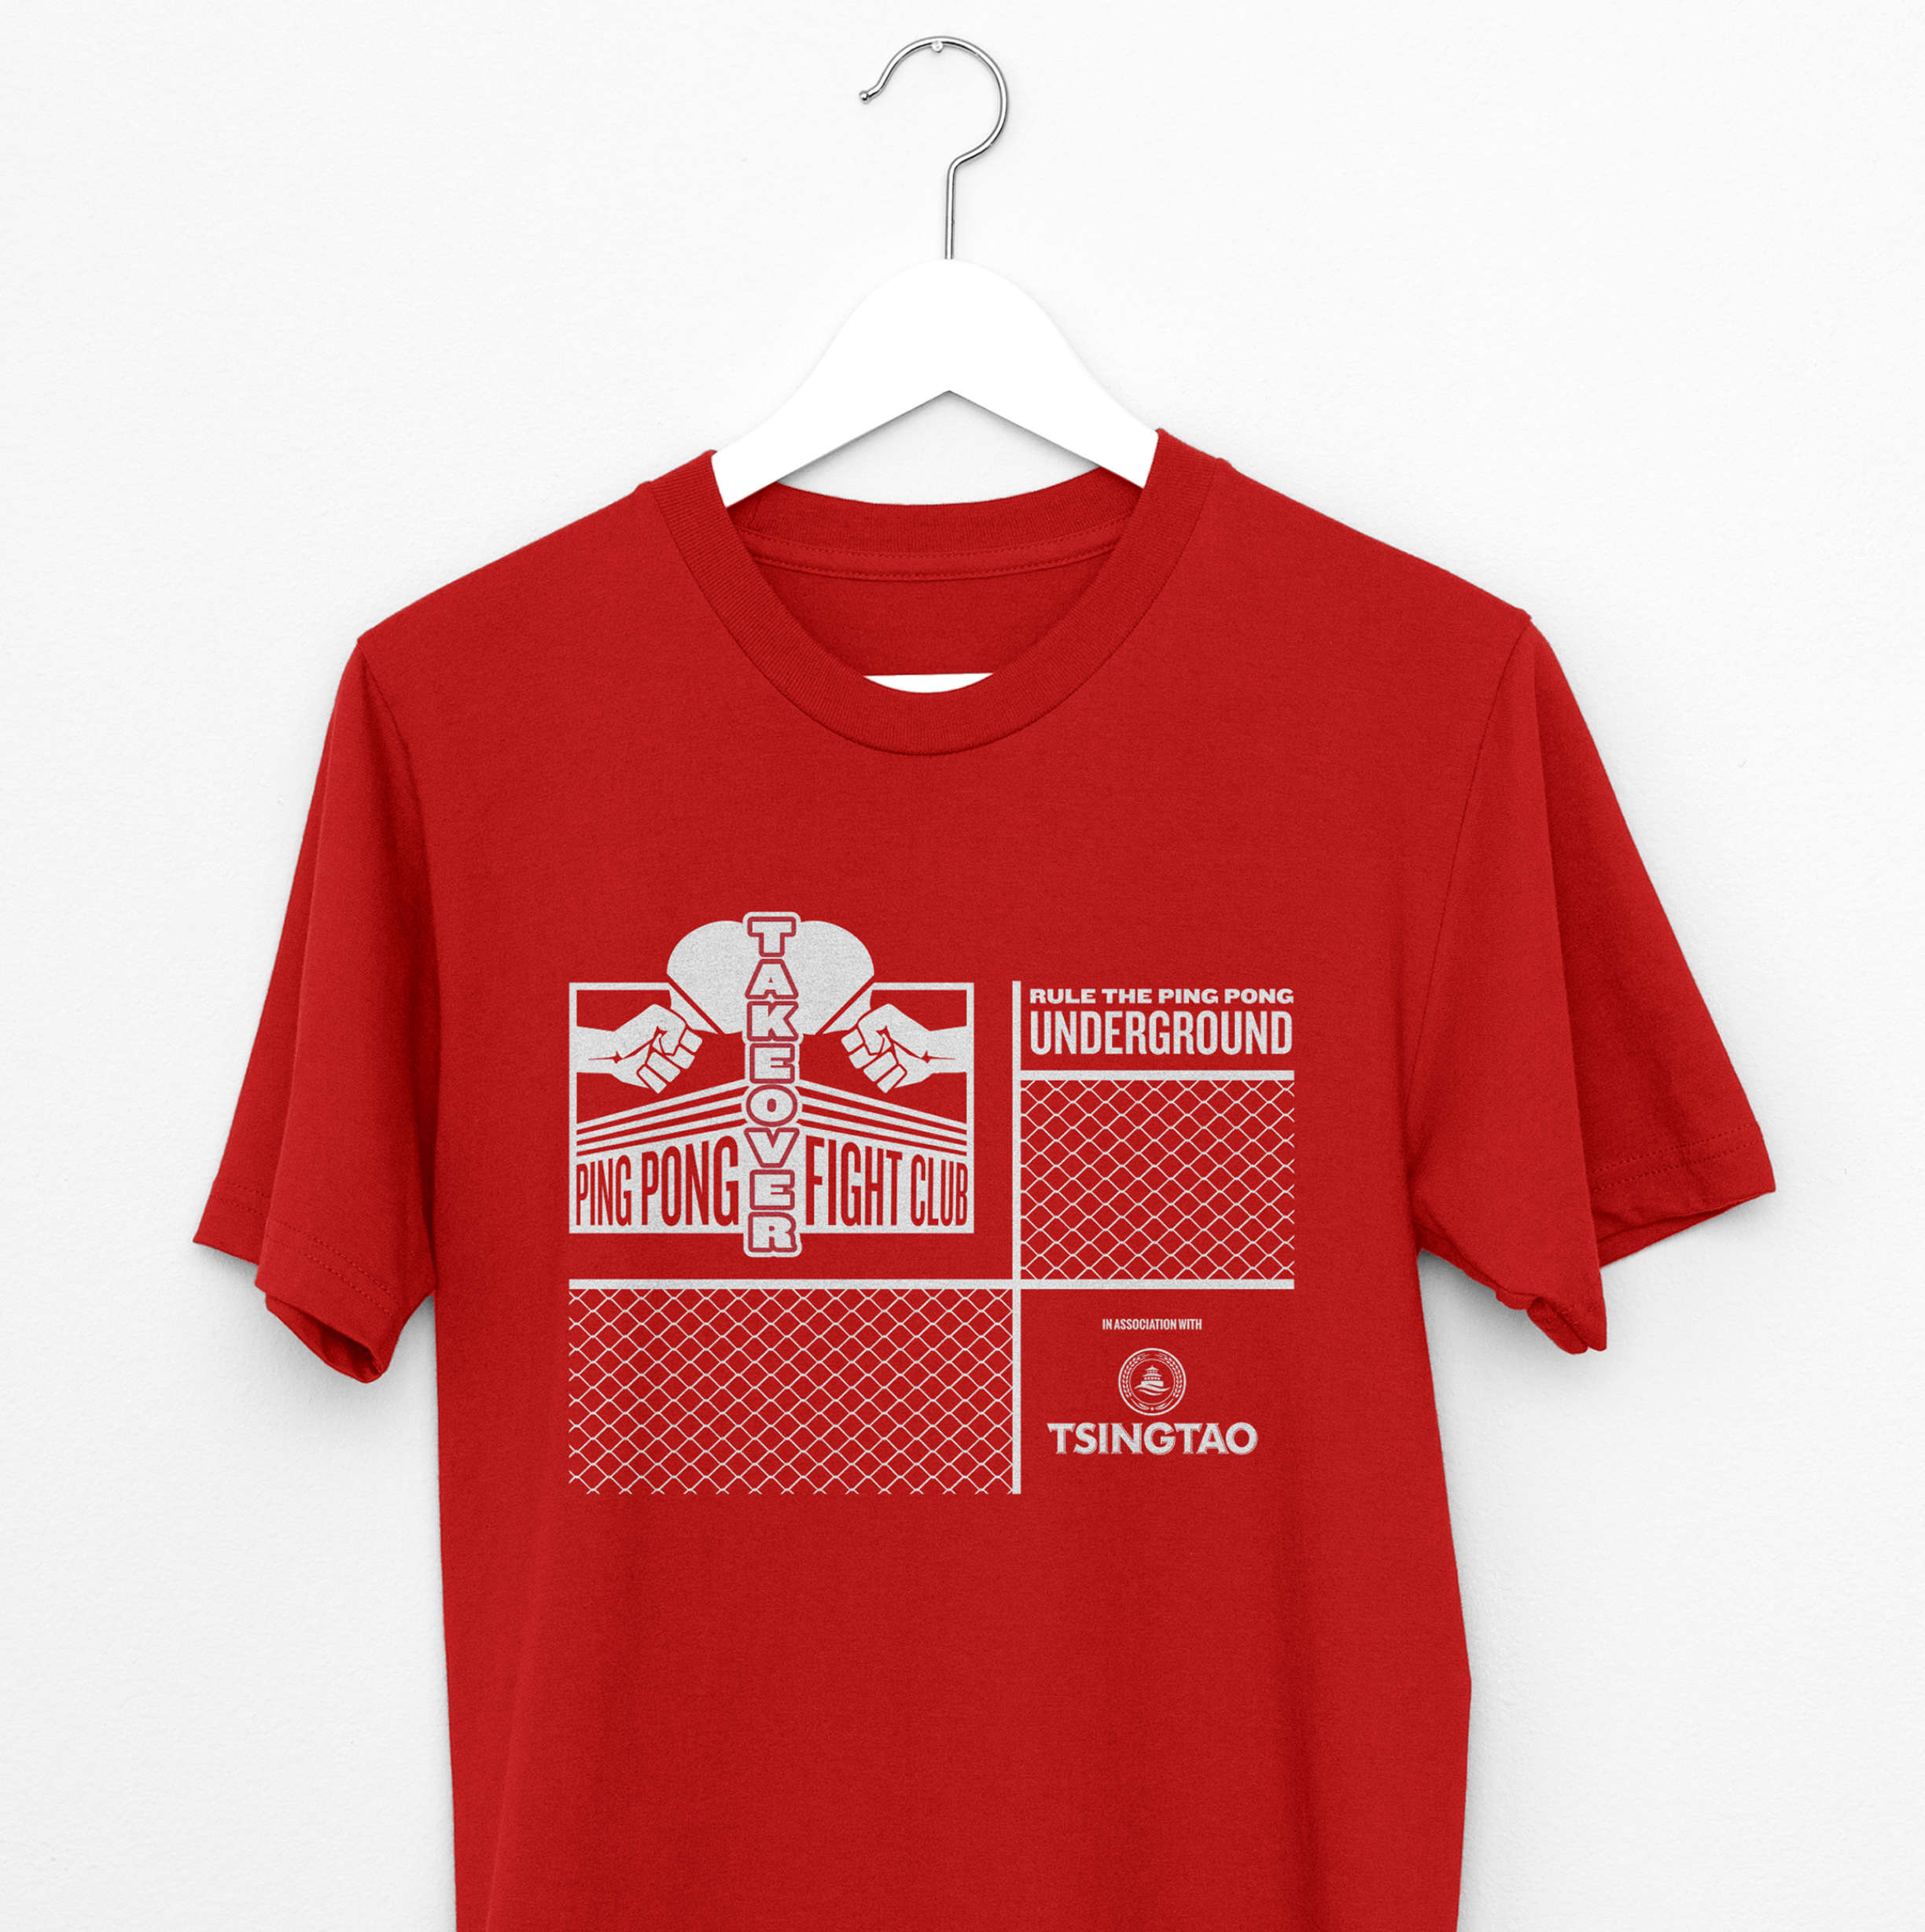 Takeover-t-shirt